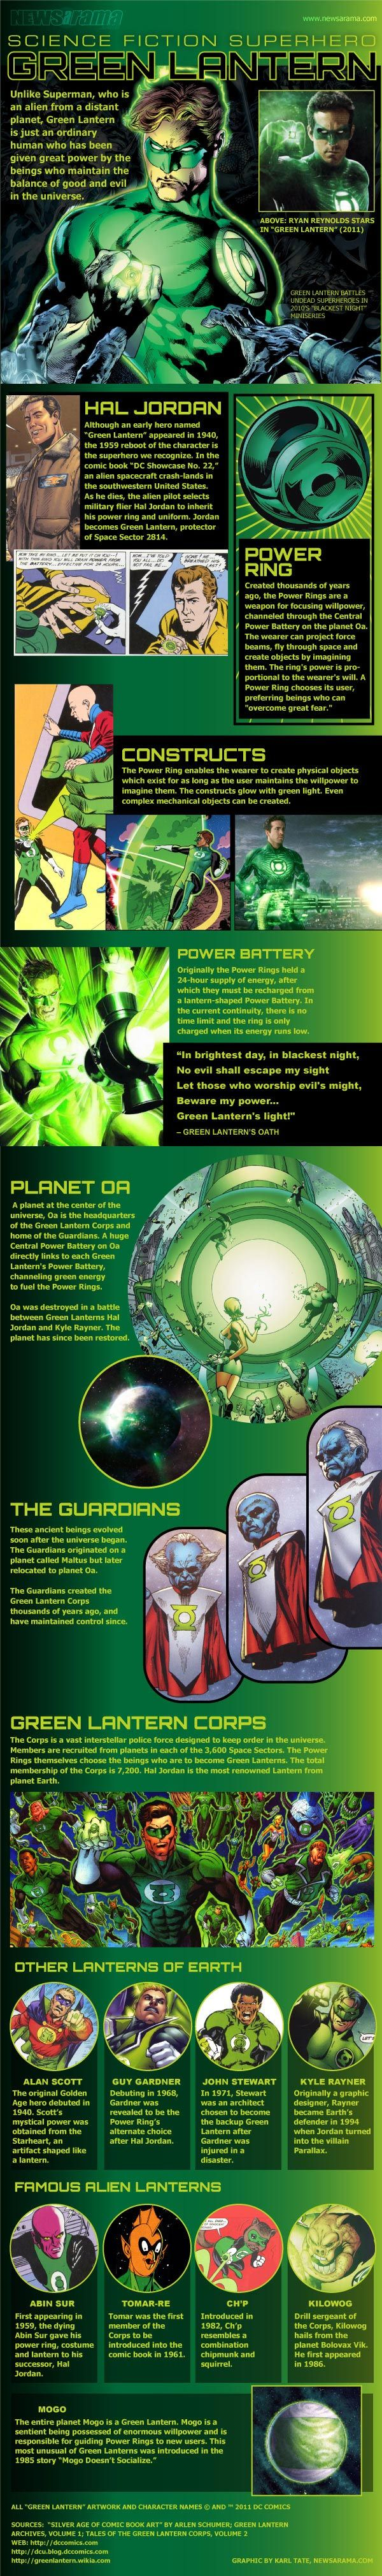 Green Lantern is a superhero that has been given the power by people who maintain the balance of good and evil. This infographic takes a look at Green